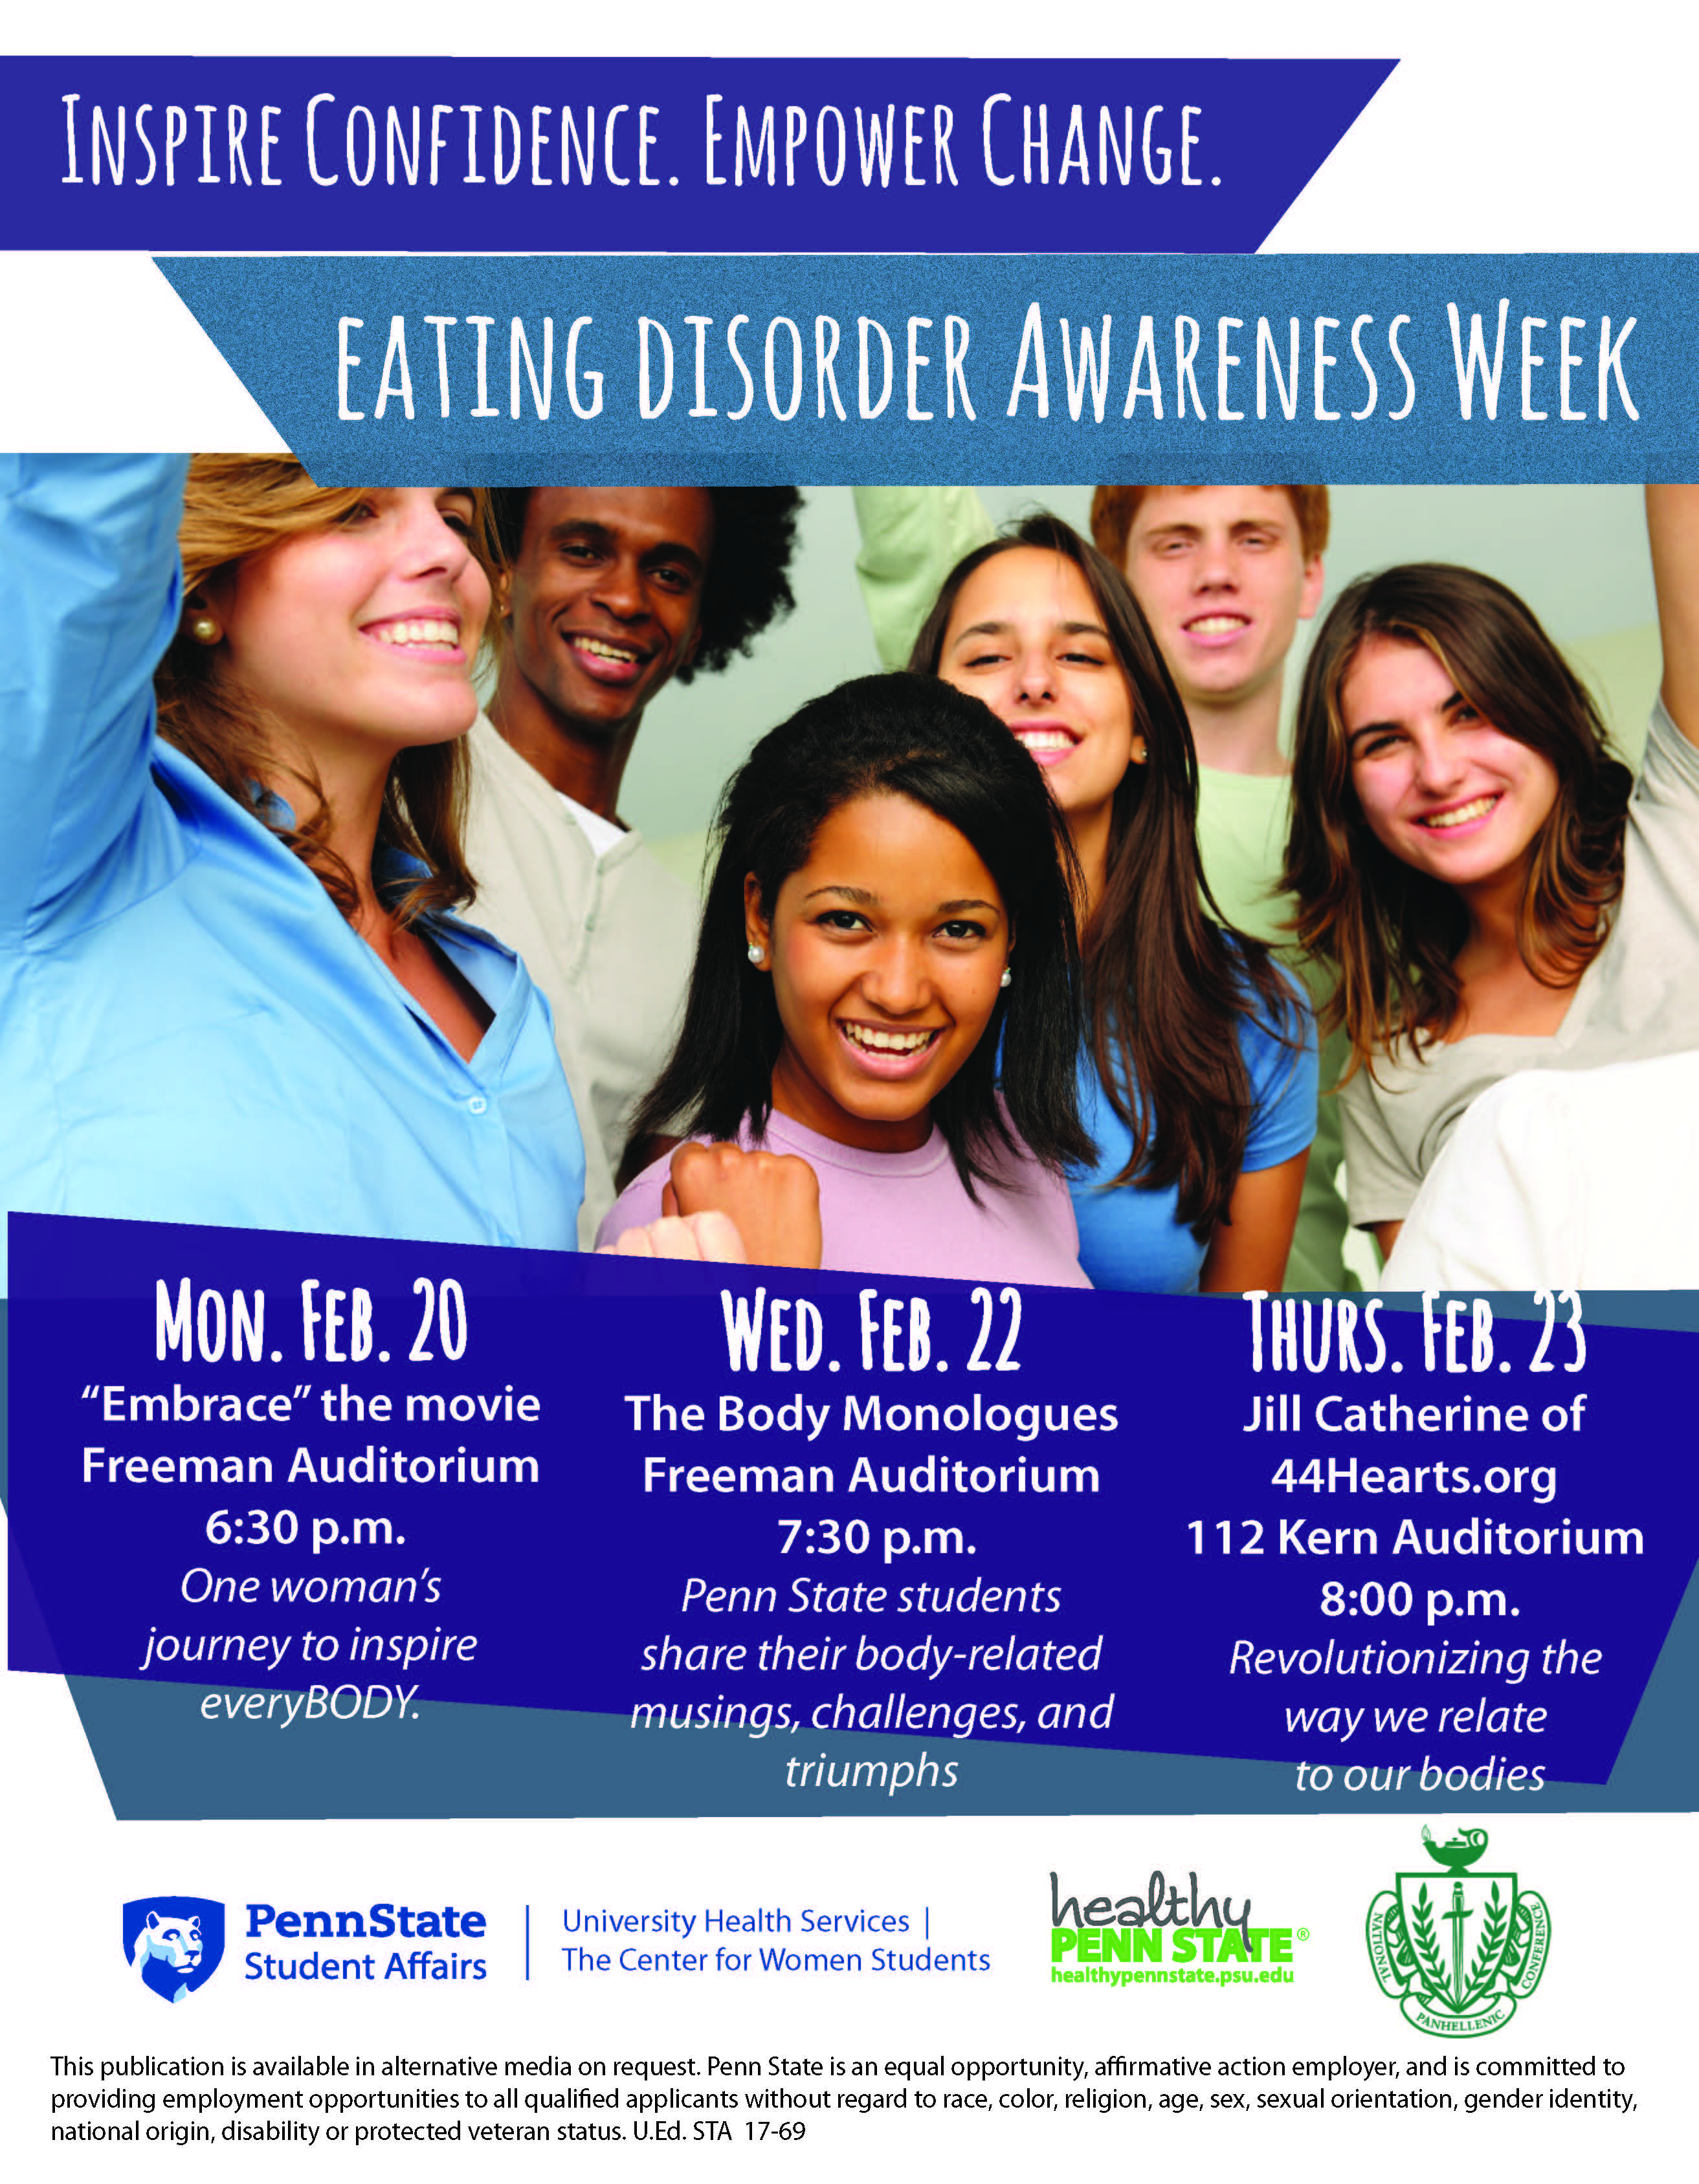 Eating Disorder Awareness Week Healthy Penn State - 15 inspiring women won against eating disorders